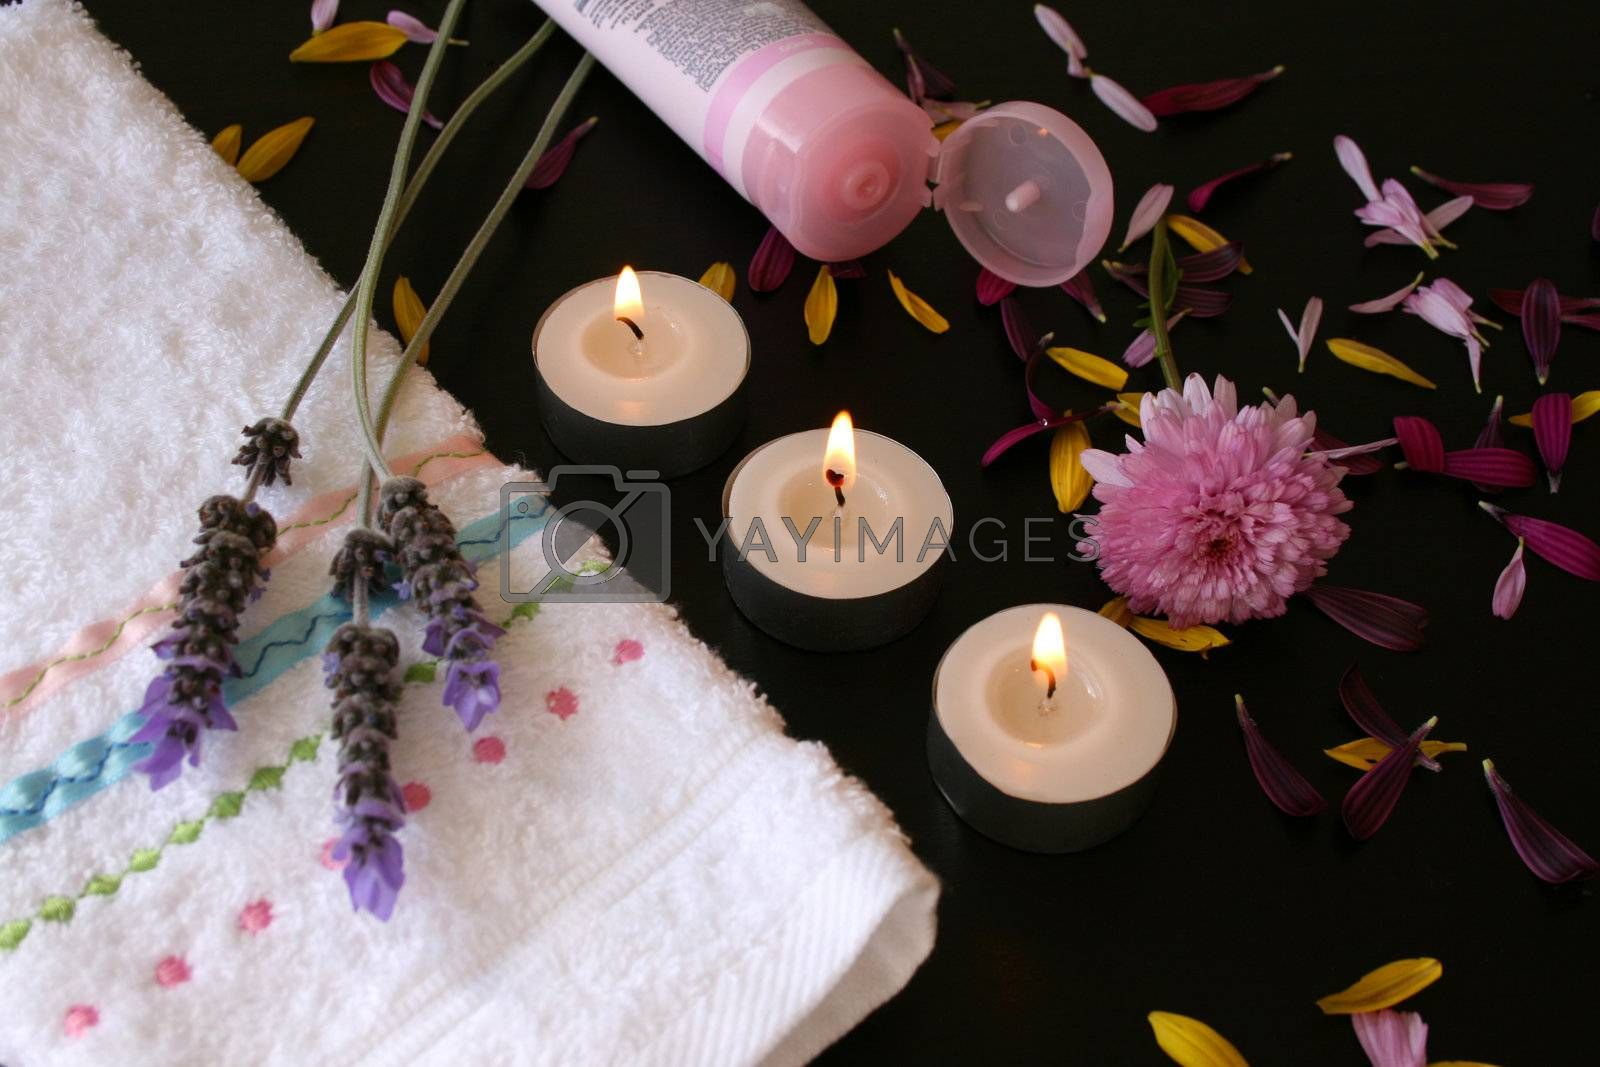 Pink body lotion in a tube next to a hand towel and candles